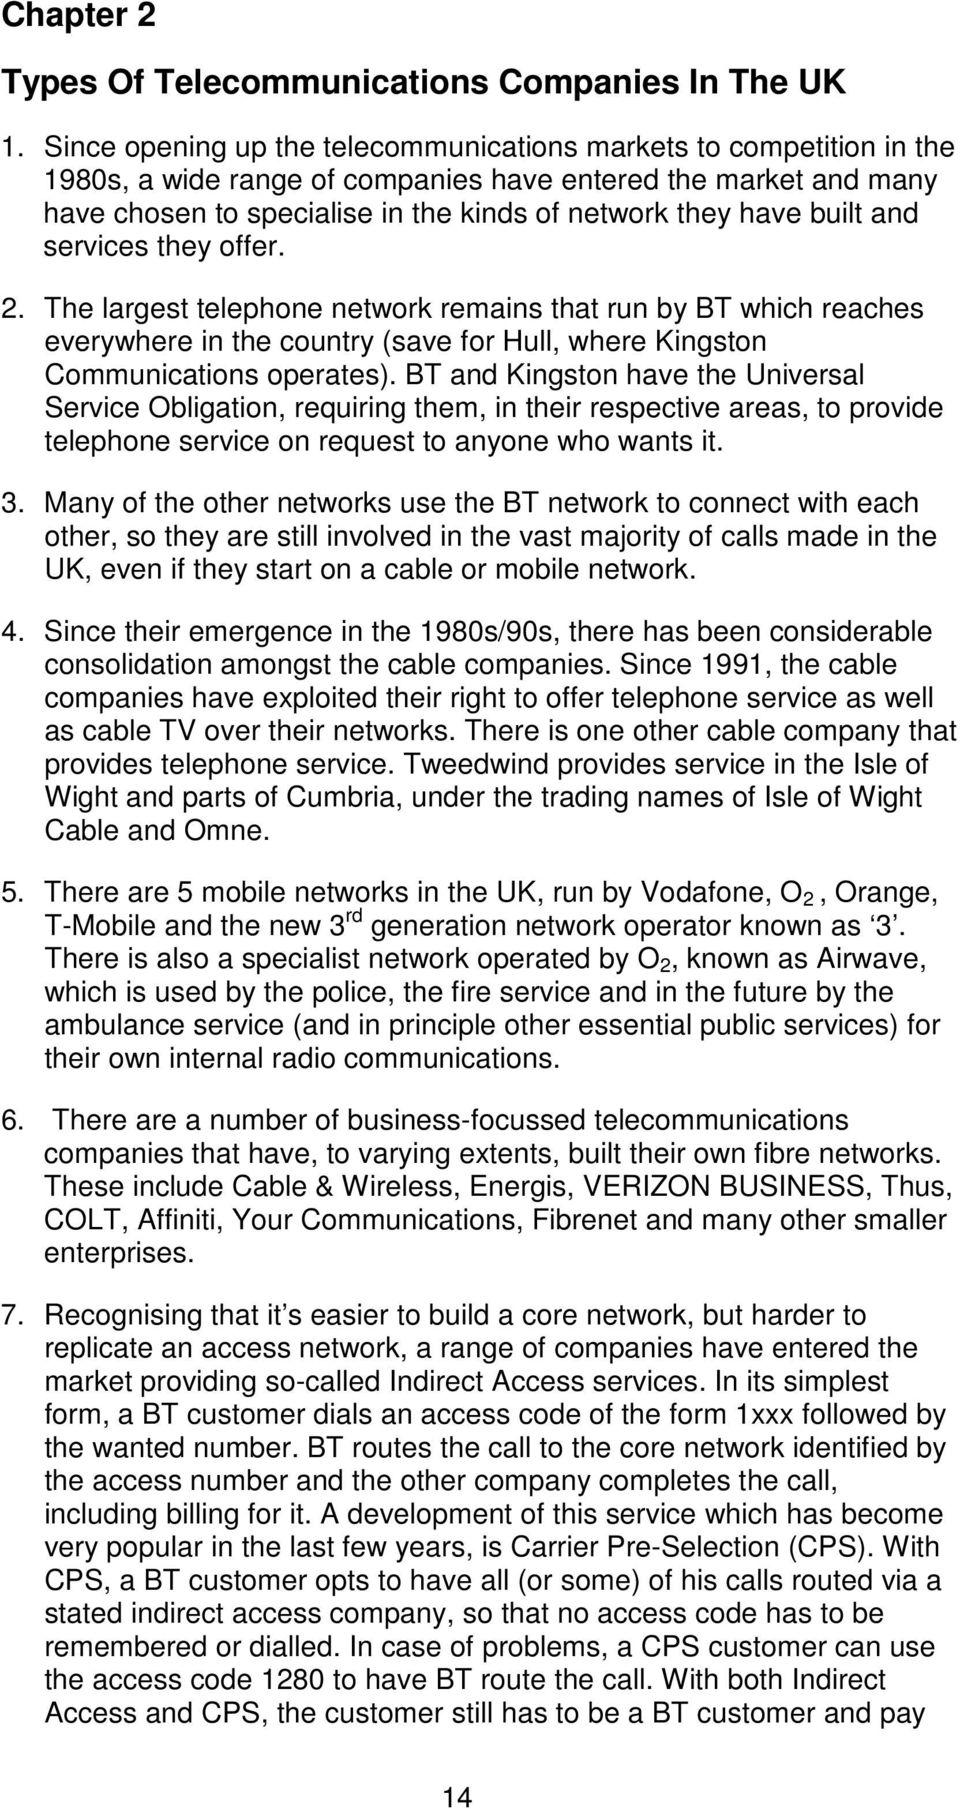 built and services they offer. 2. The largest telephone network remains that run by BT which reaches everywhere in the country (save for Hull, where Kingston Communications operates).